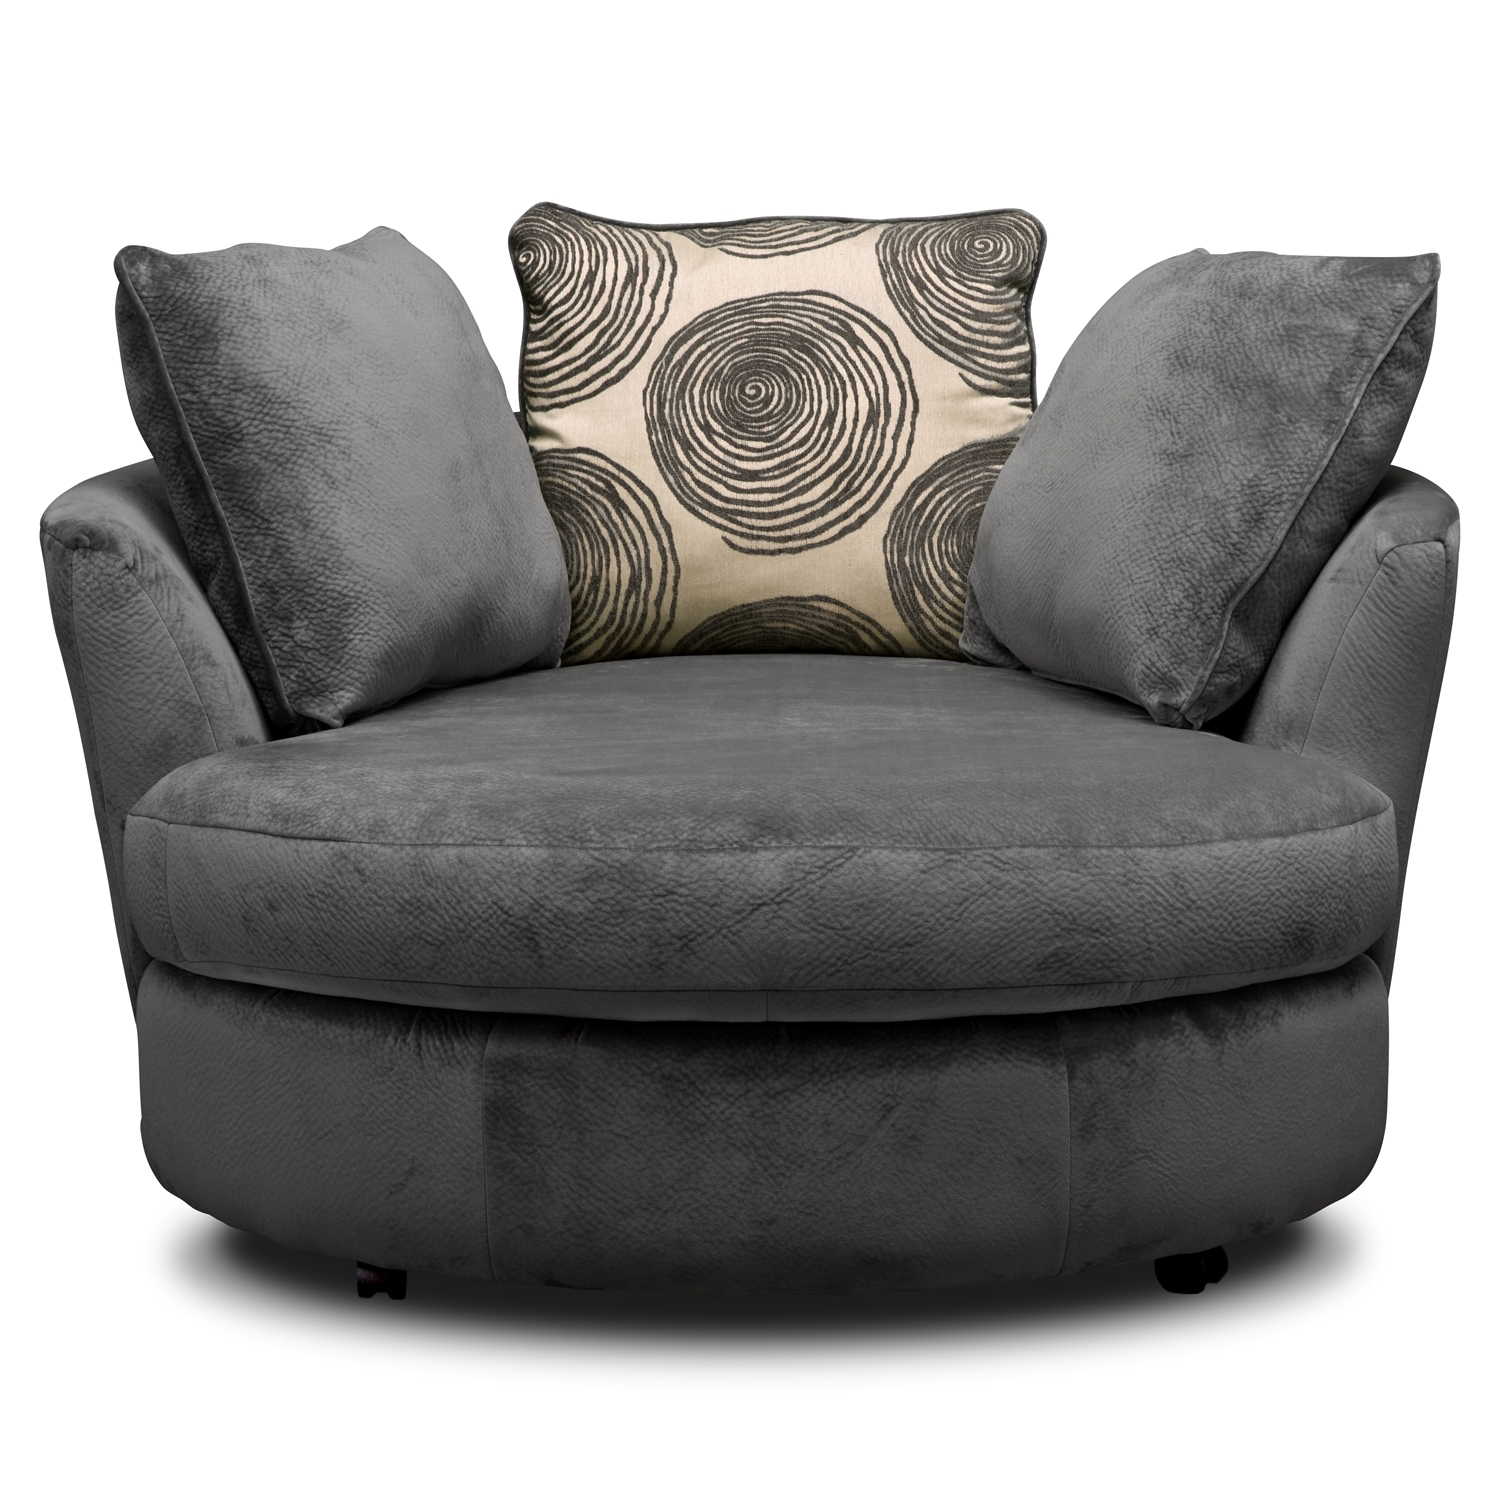 Lovely Swivel Sofa Chair 45 On Living Room Sofa Inspiration With For Sofa With Swivel Chair (Image 11 of 15)